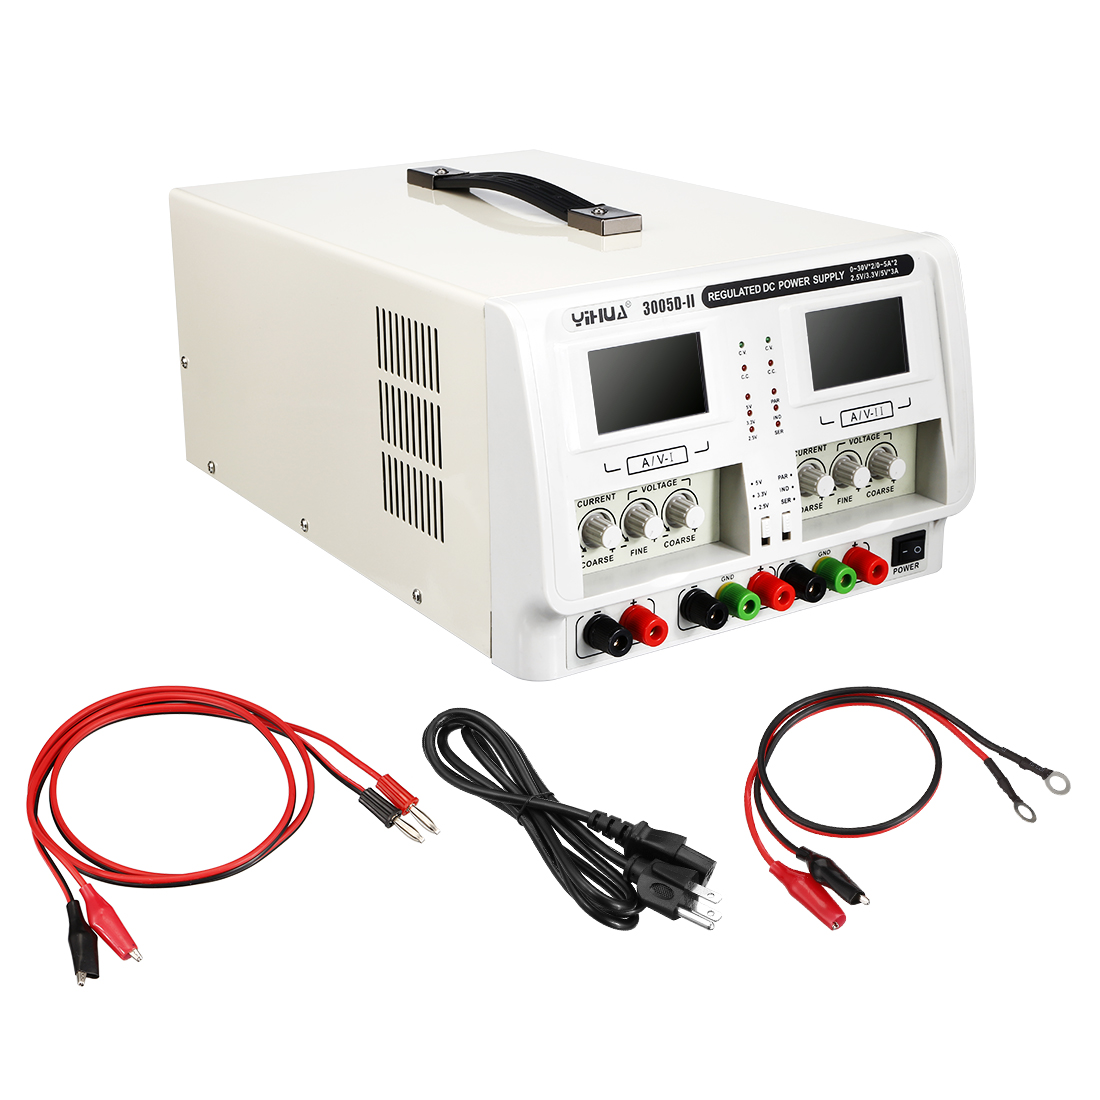 0~30V 0~5A Variable Adjustable Switching Precision DC Power Supply LED Display - image 5 de 5